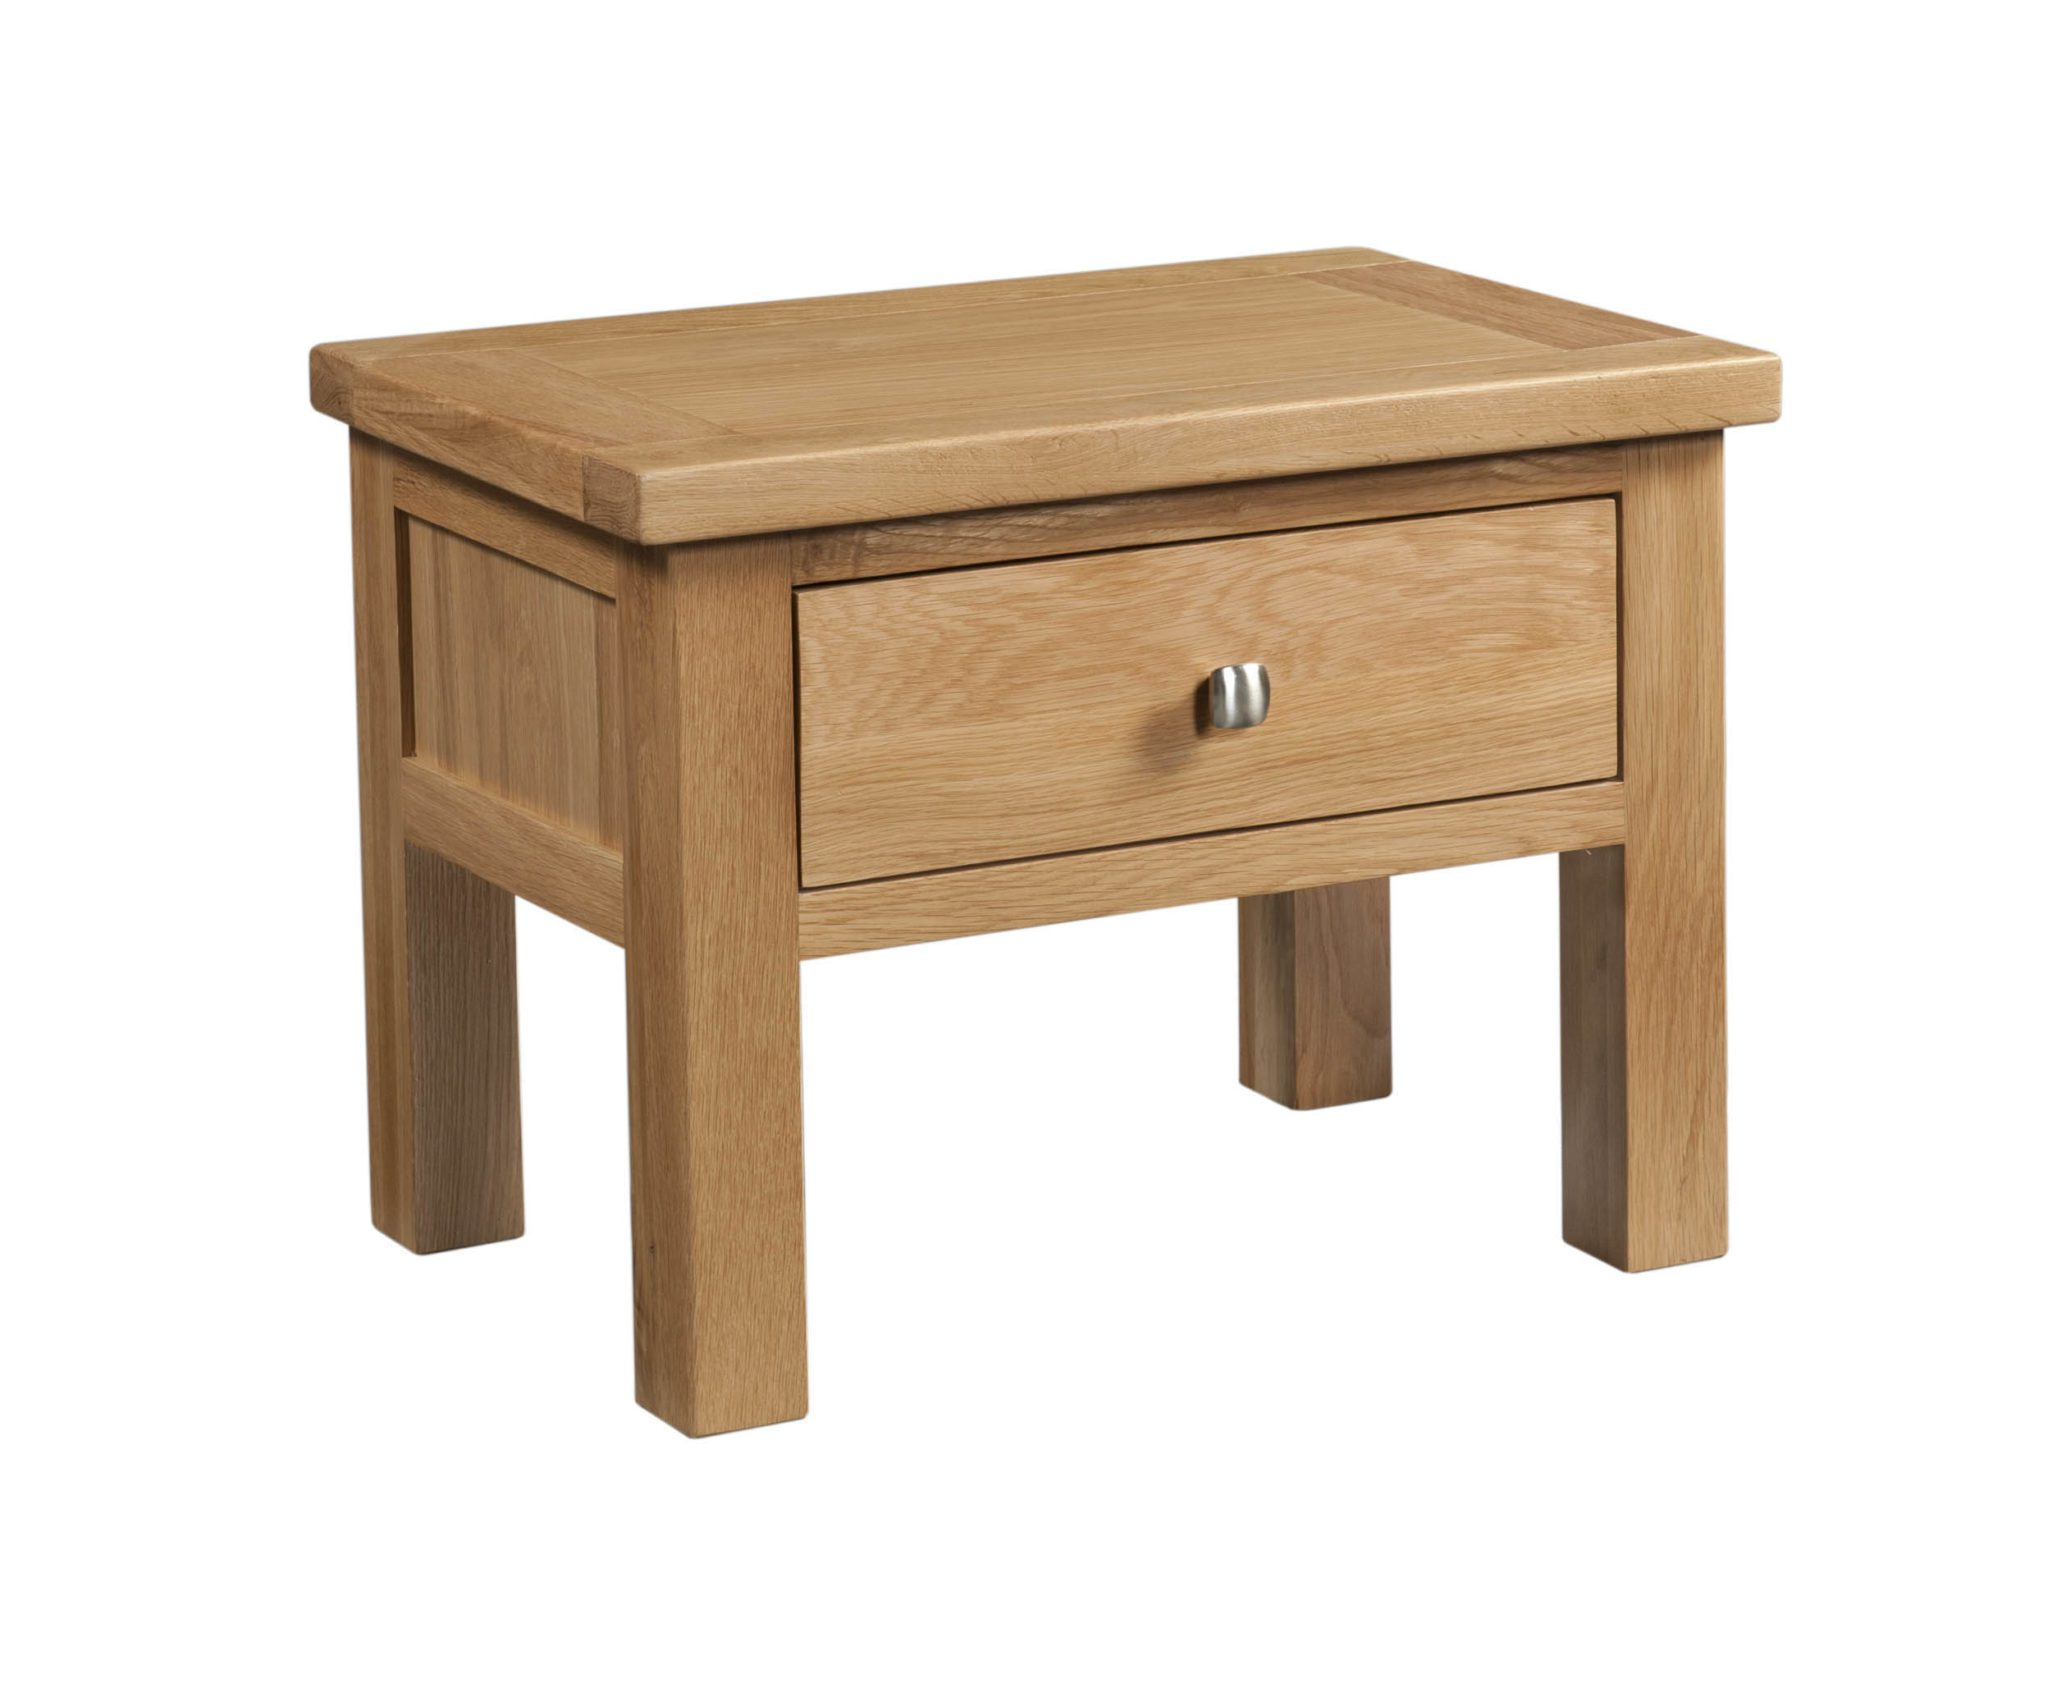 Dorset oak side table with drawer and silver knob